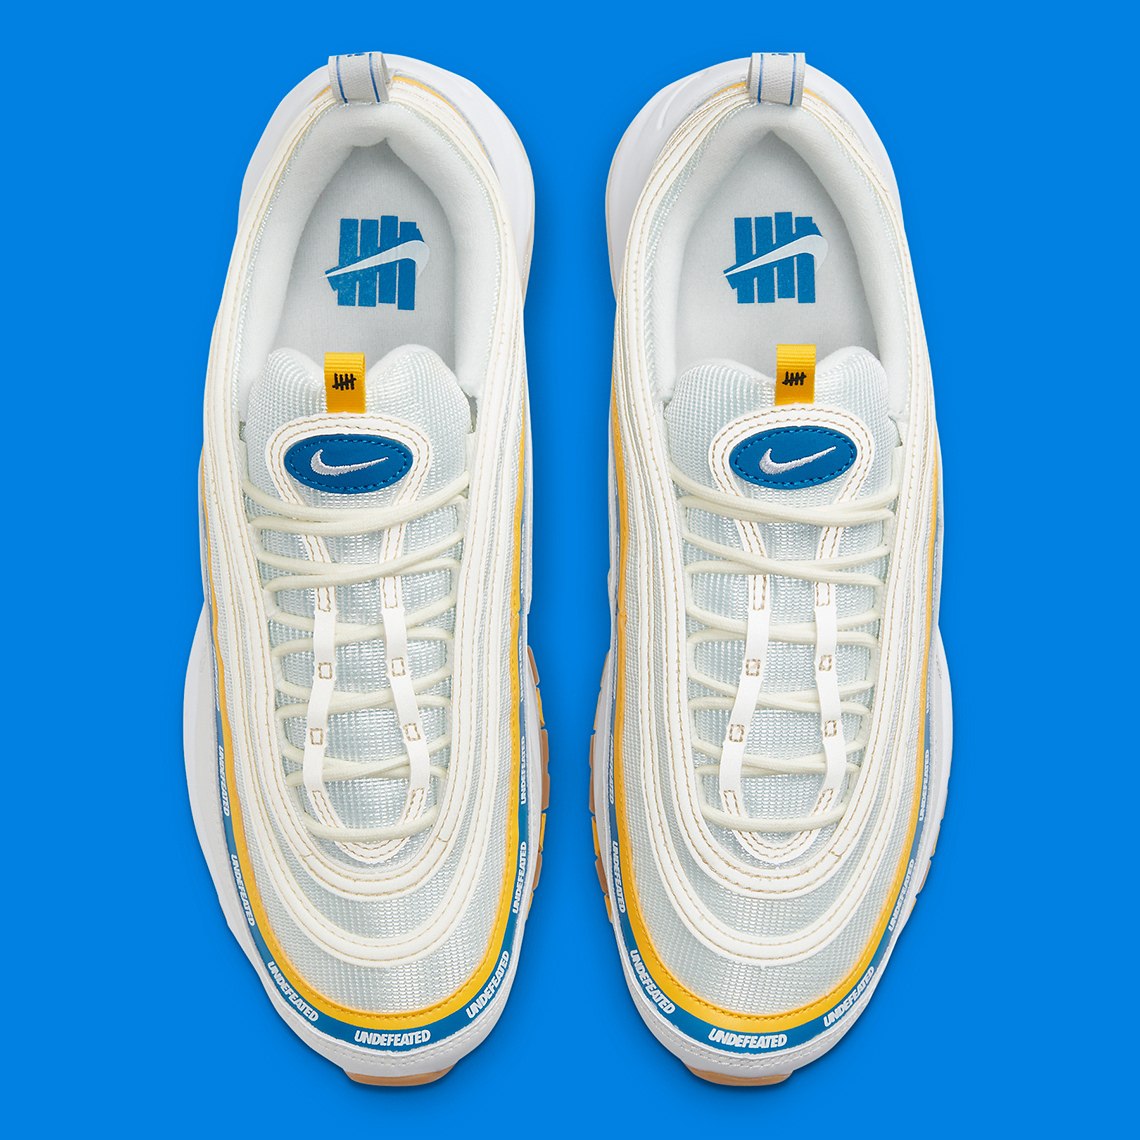 undefeated-nike-air-max-97-ucla-DC4830-100-release-date-4